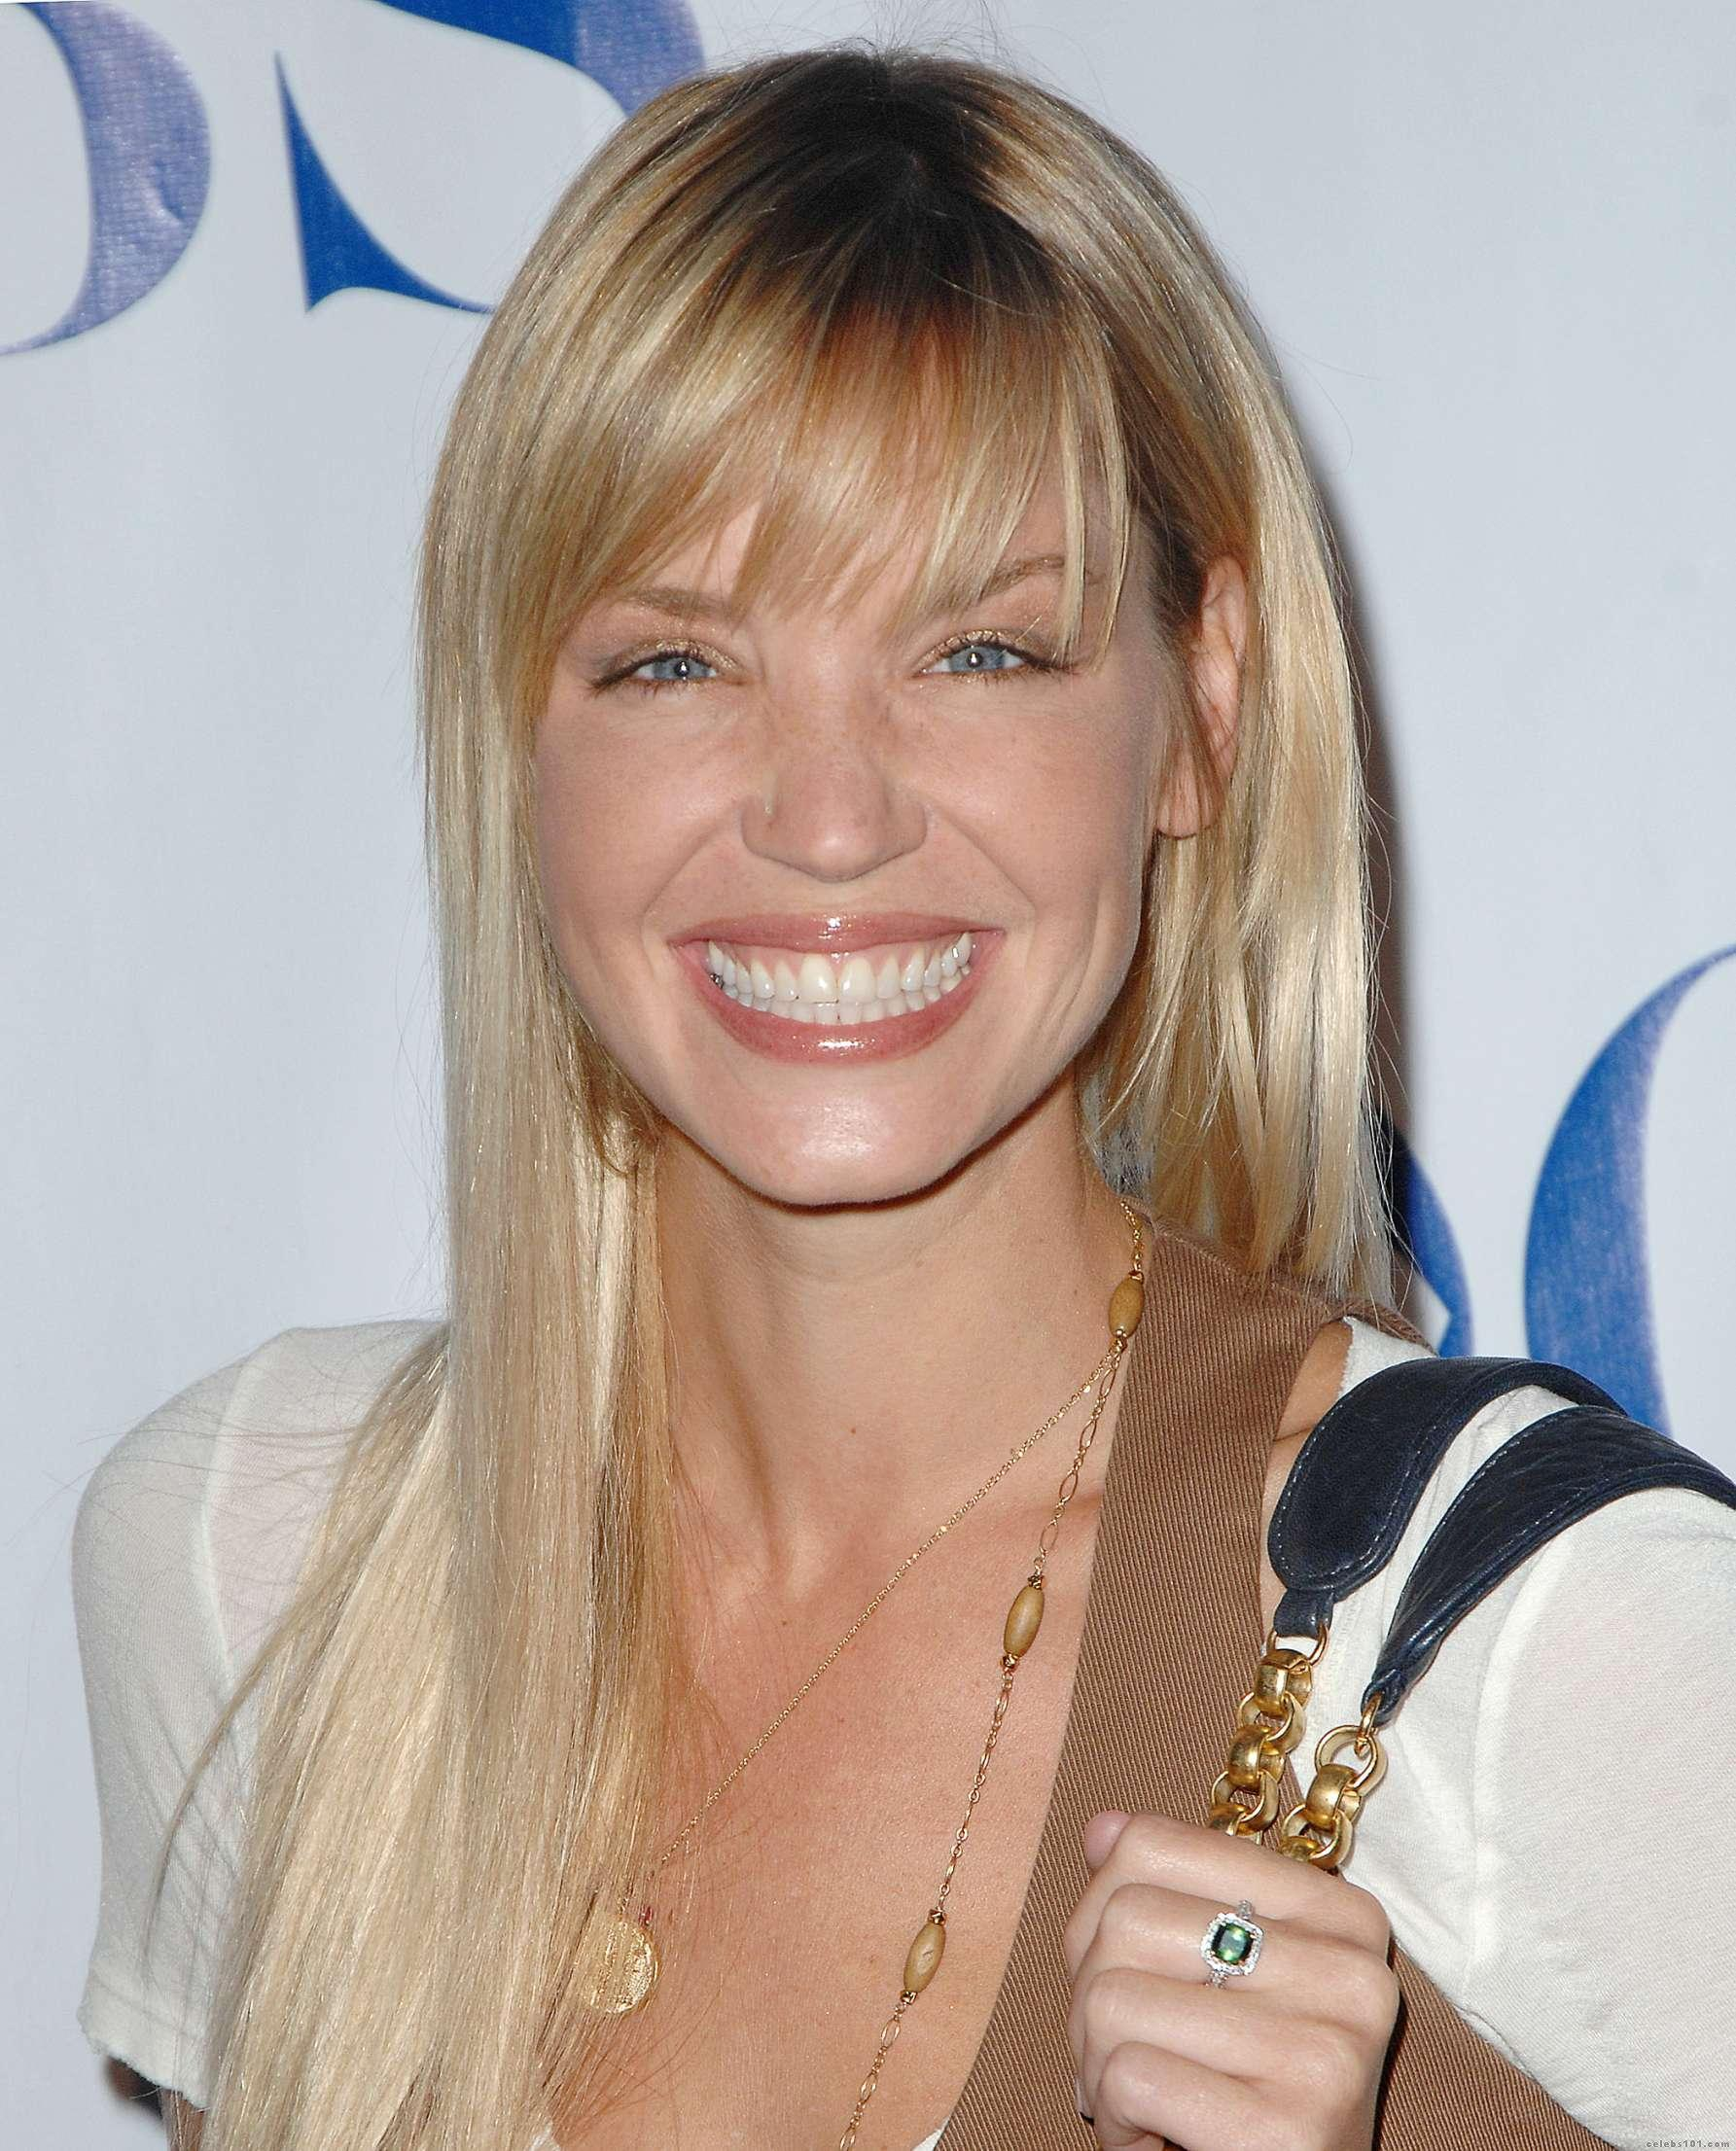 Ashley Scott - High quality